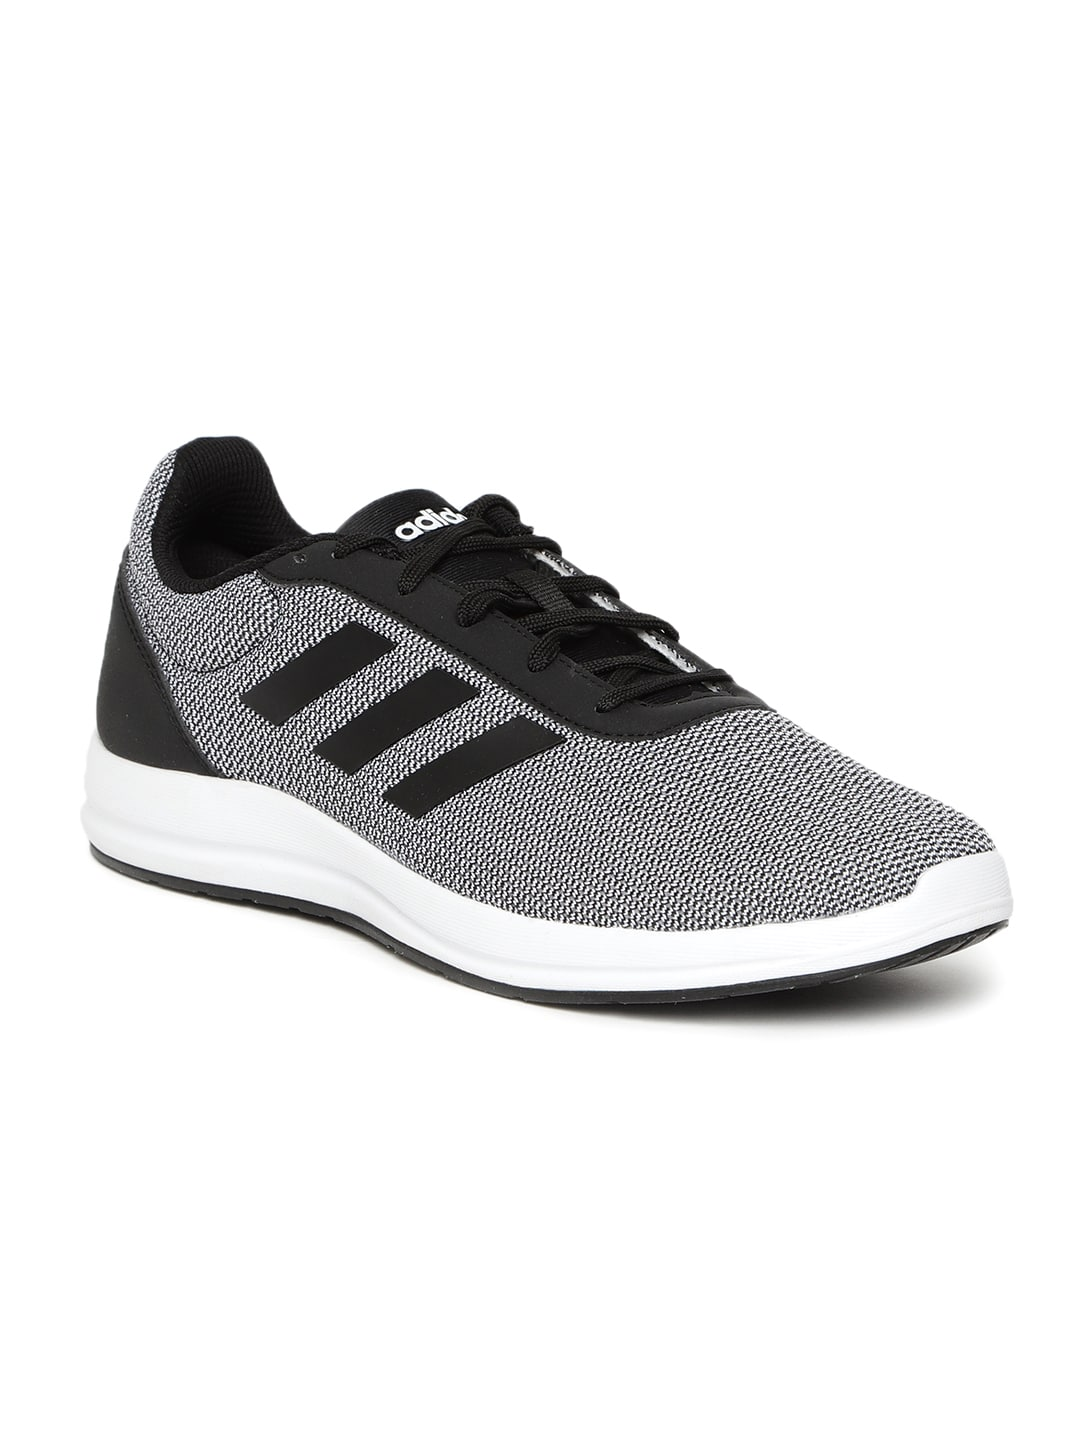 a543dc3f8ea7fa Sports Shoes - Buy Sport Shoes For Men   Women Online